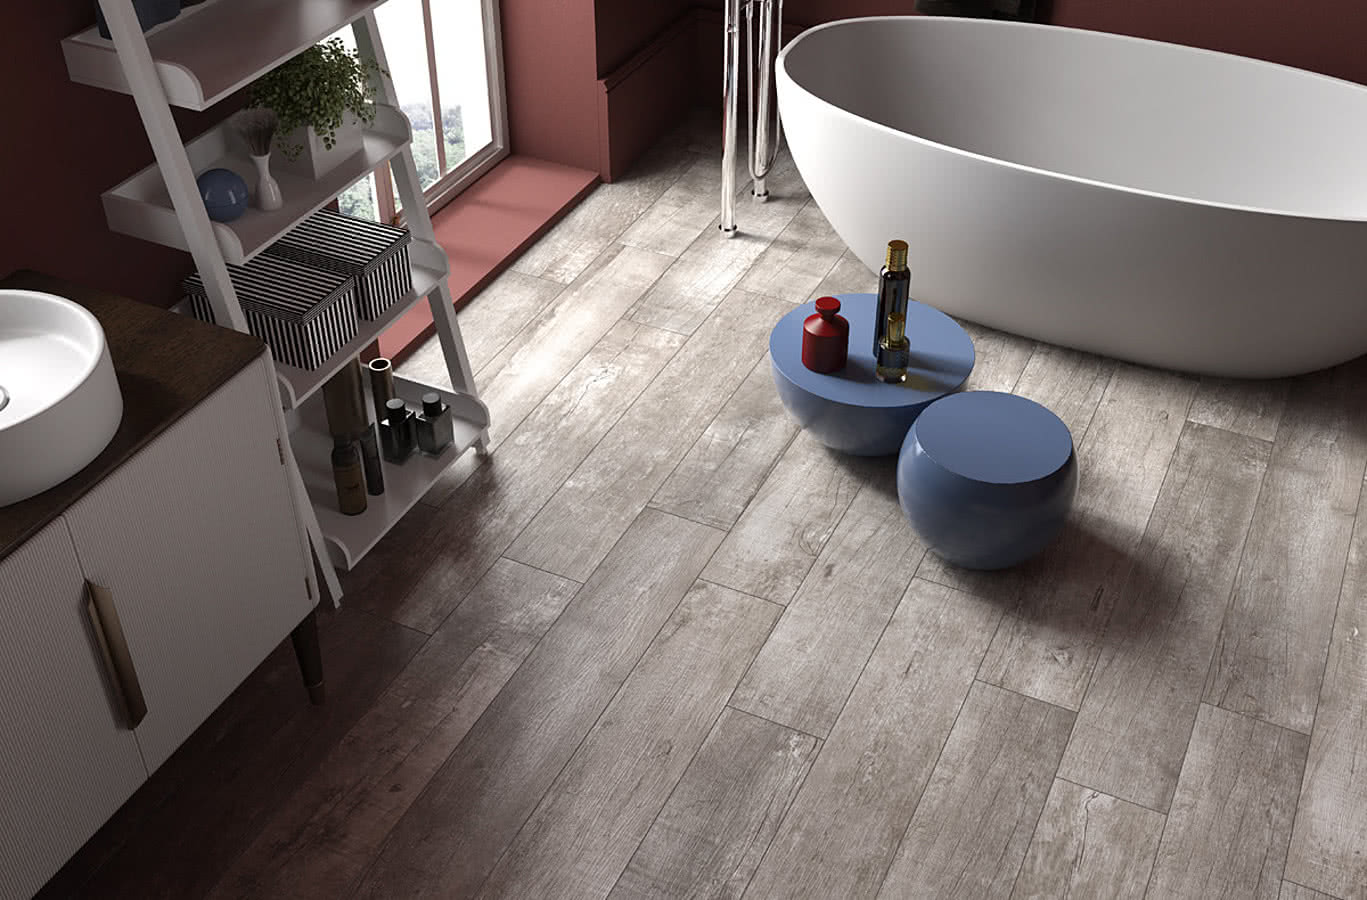 Nirvana By La Faenza Tile Expert Distributor Of